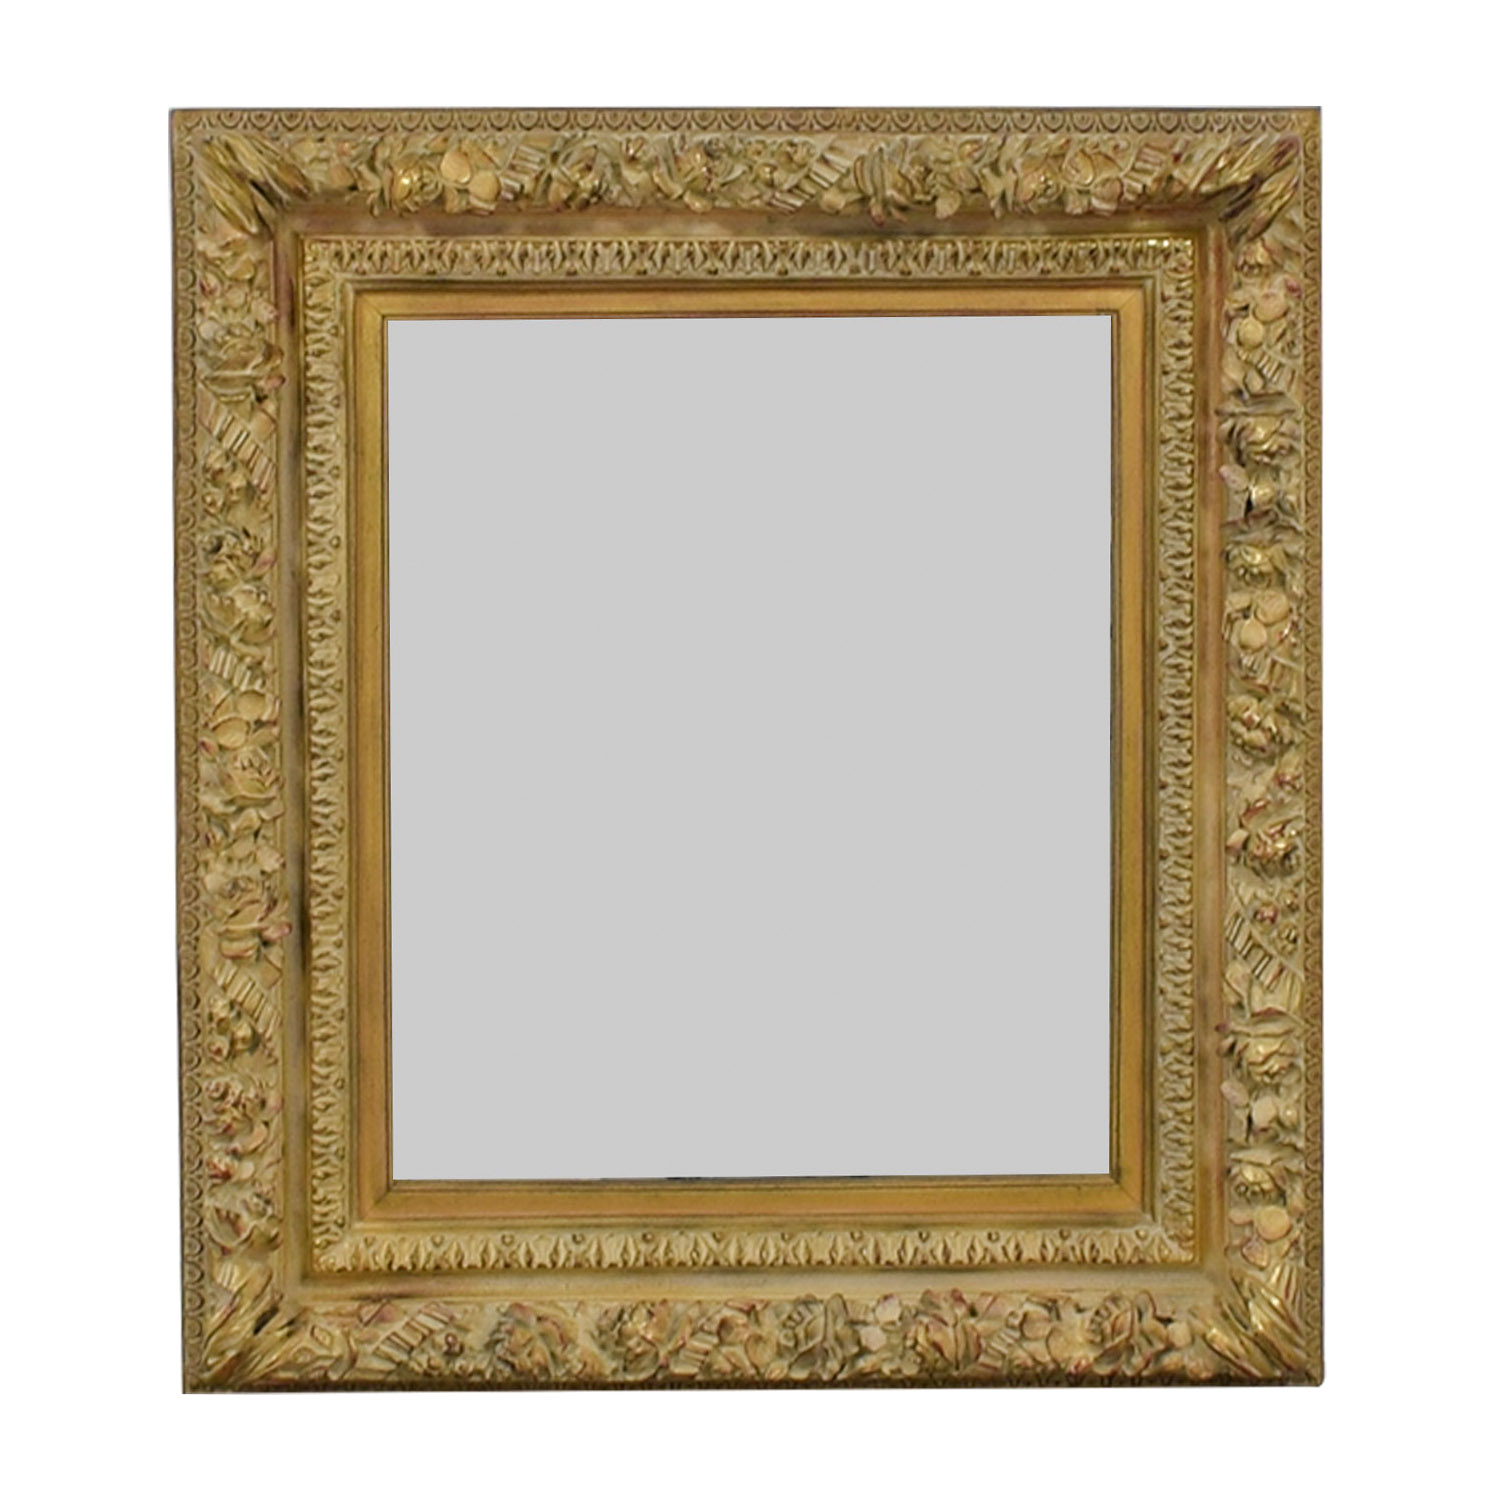 Bombay Home Decor Bombay Home Decor Gold Framed  Wall Mirror Cream